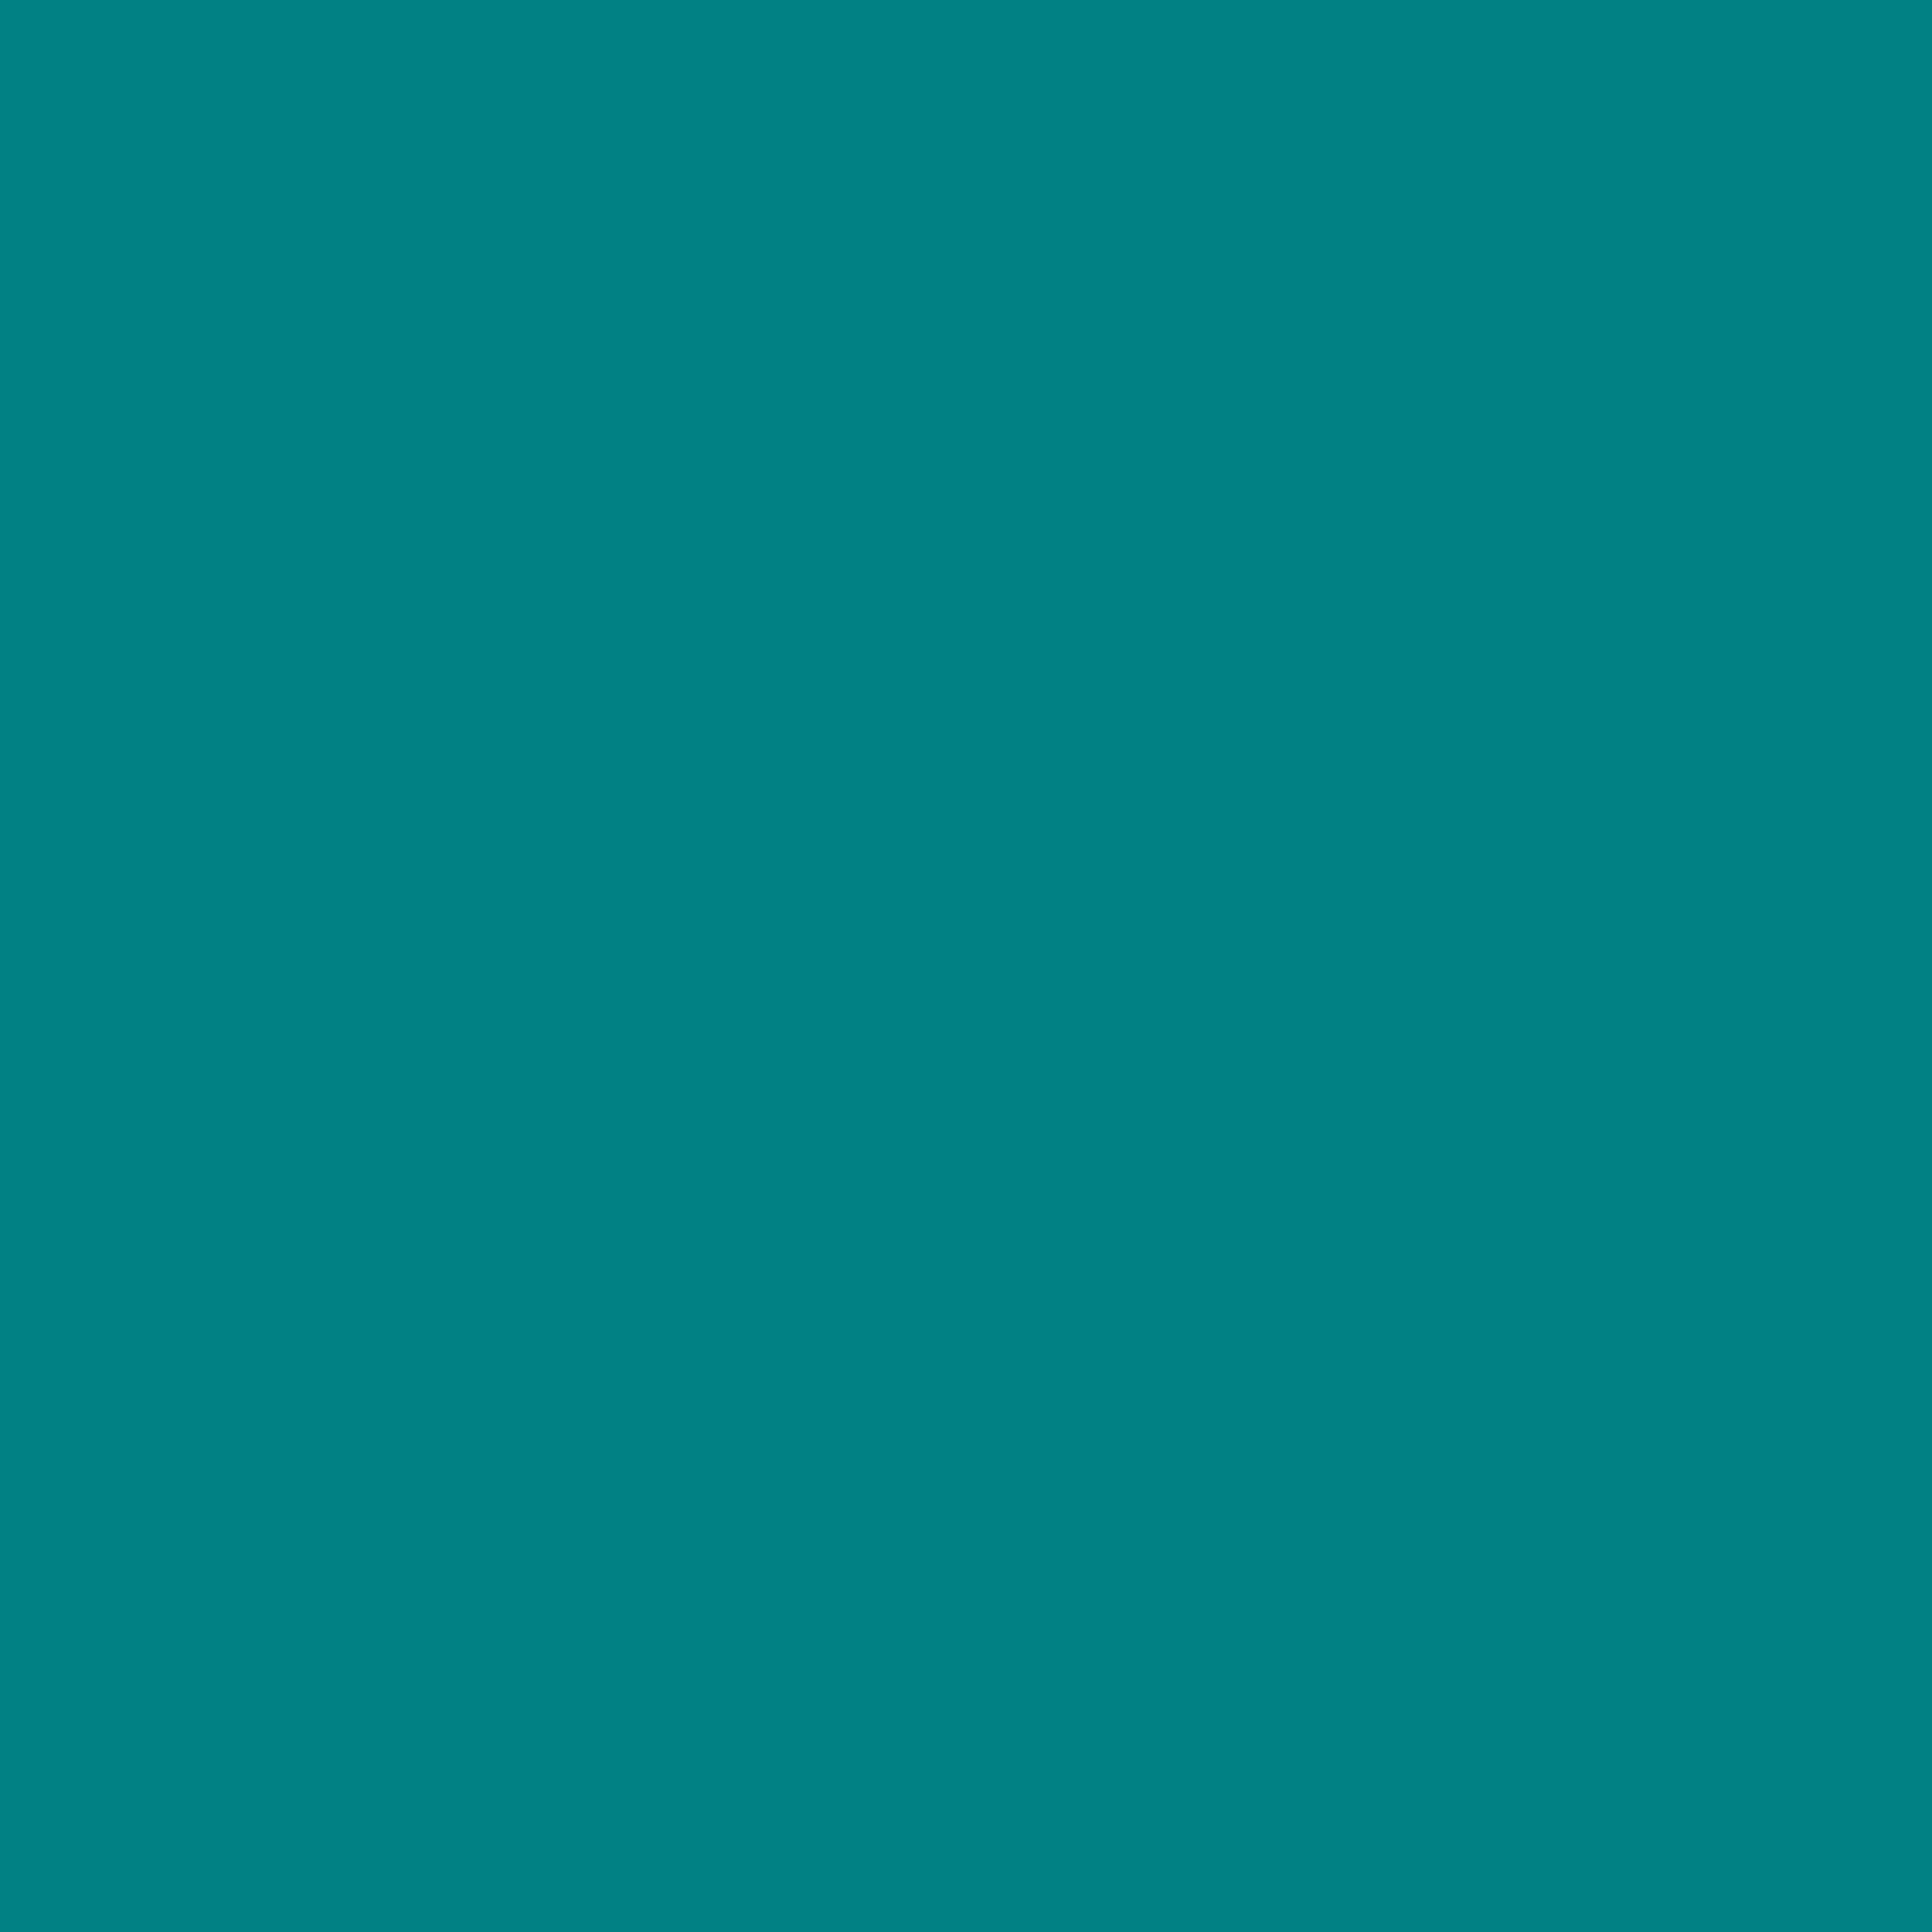 2048x2048 Teal Solid Color Background